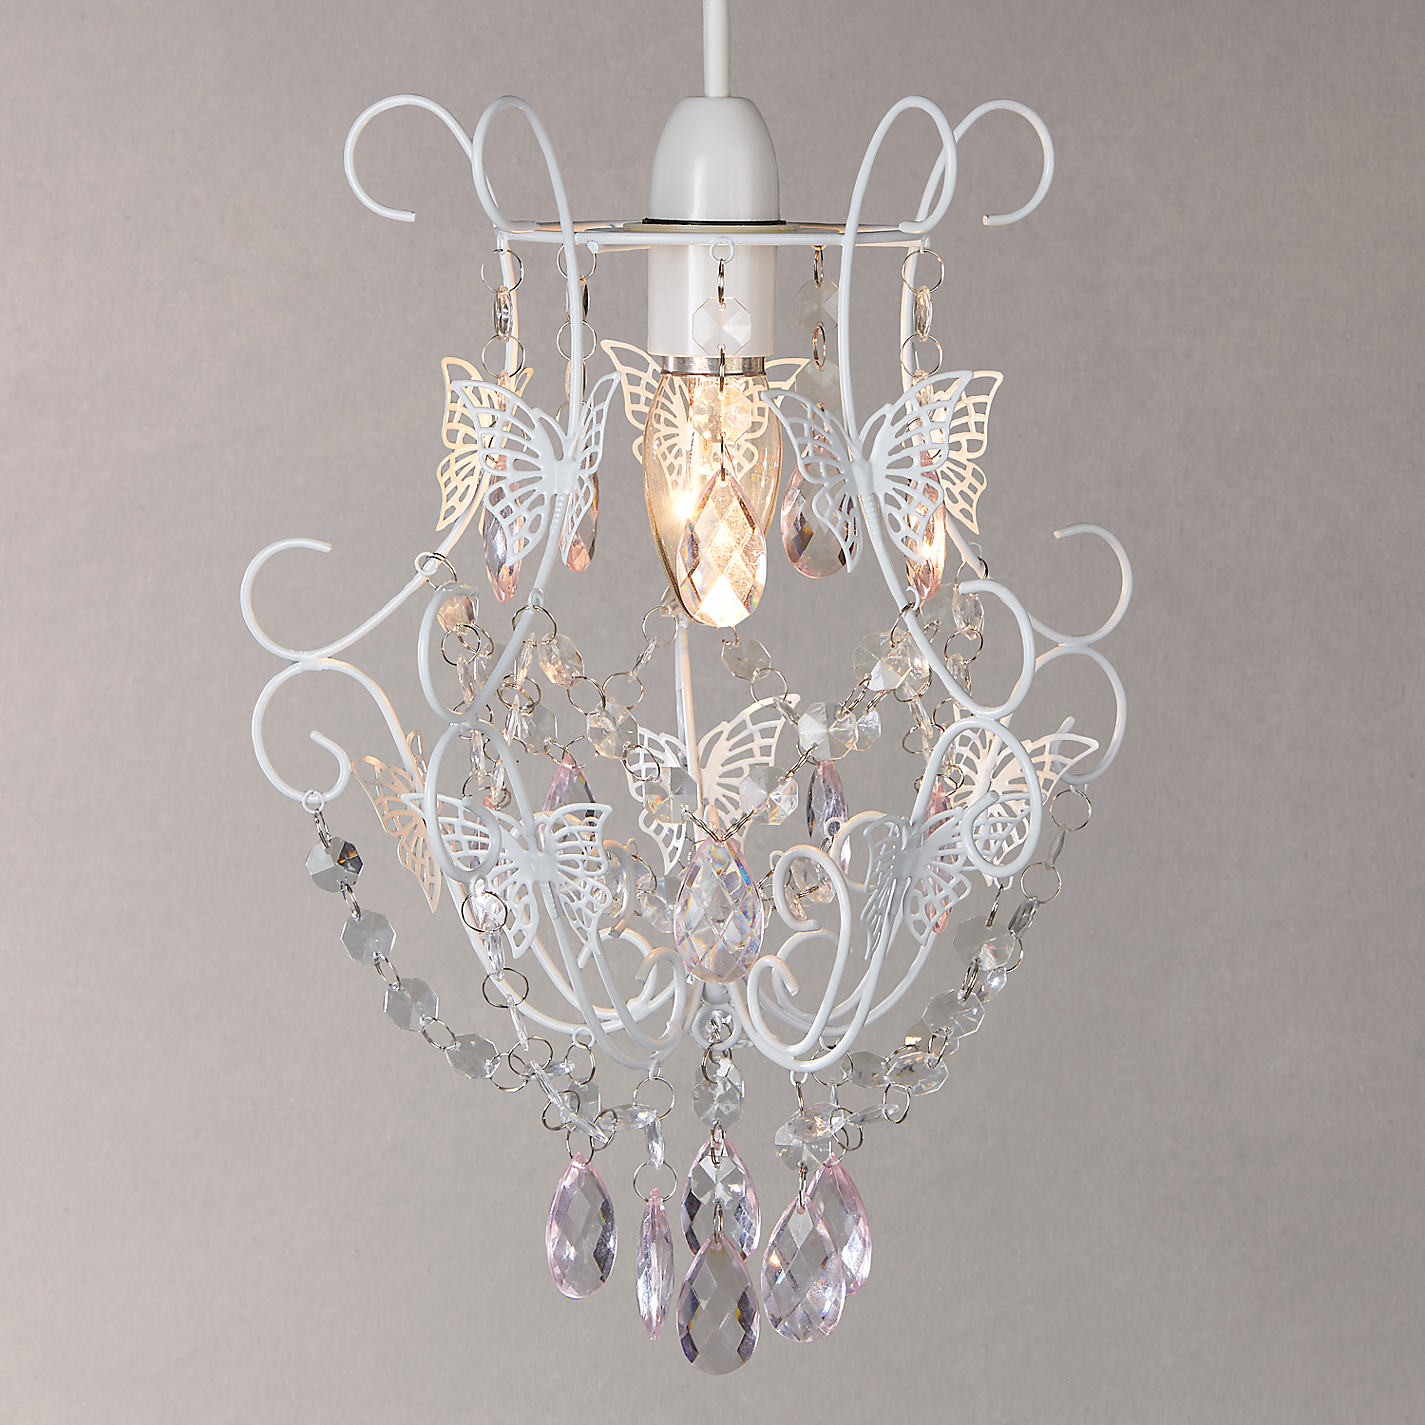 Buy little home at john lewis little fairy chandelier lampshade buy little home at john lewis little fairy chandelier lampshade online at johnlewis mozeypictures Gallery